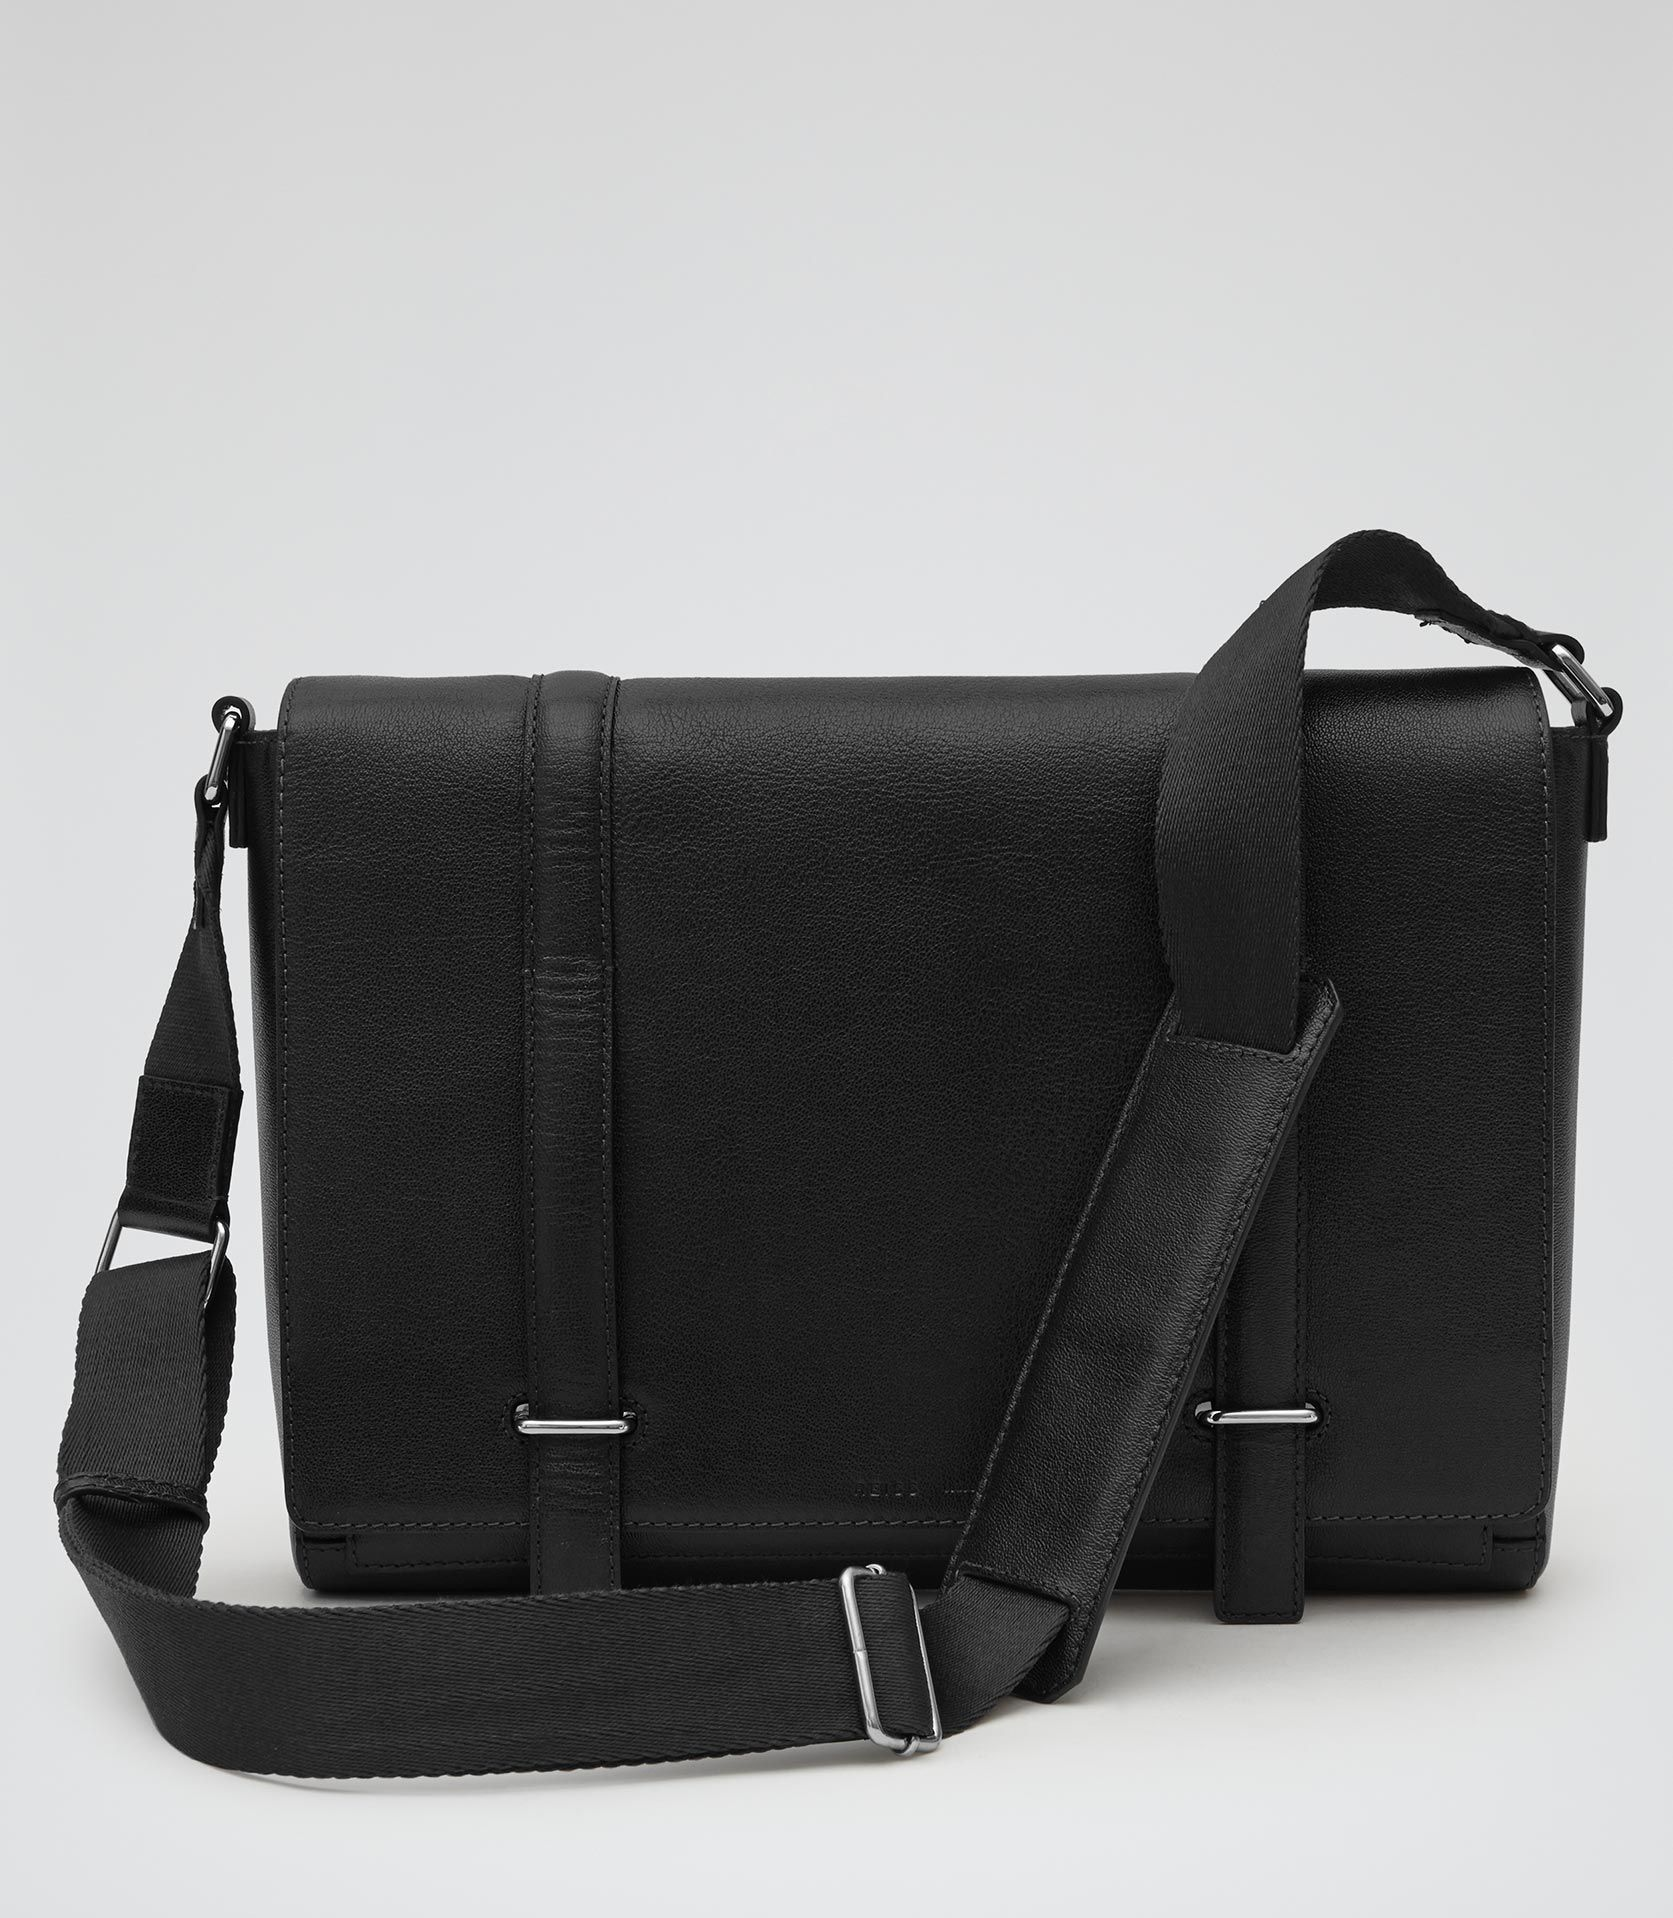 Mens Black Leather Messenger Bag - Reiss Salvatrucha | Sartorials ...